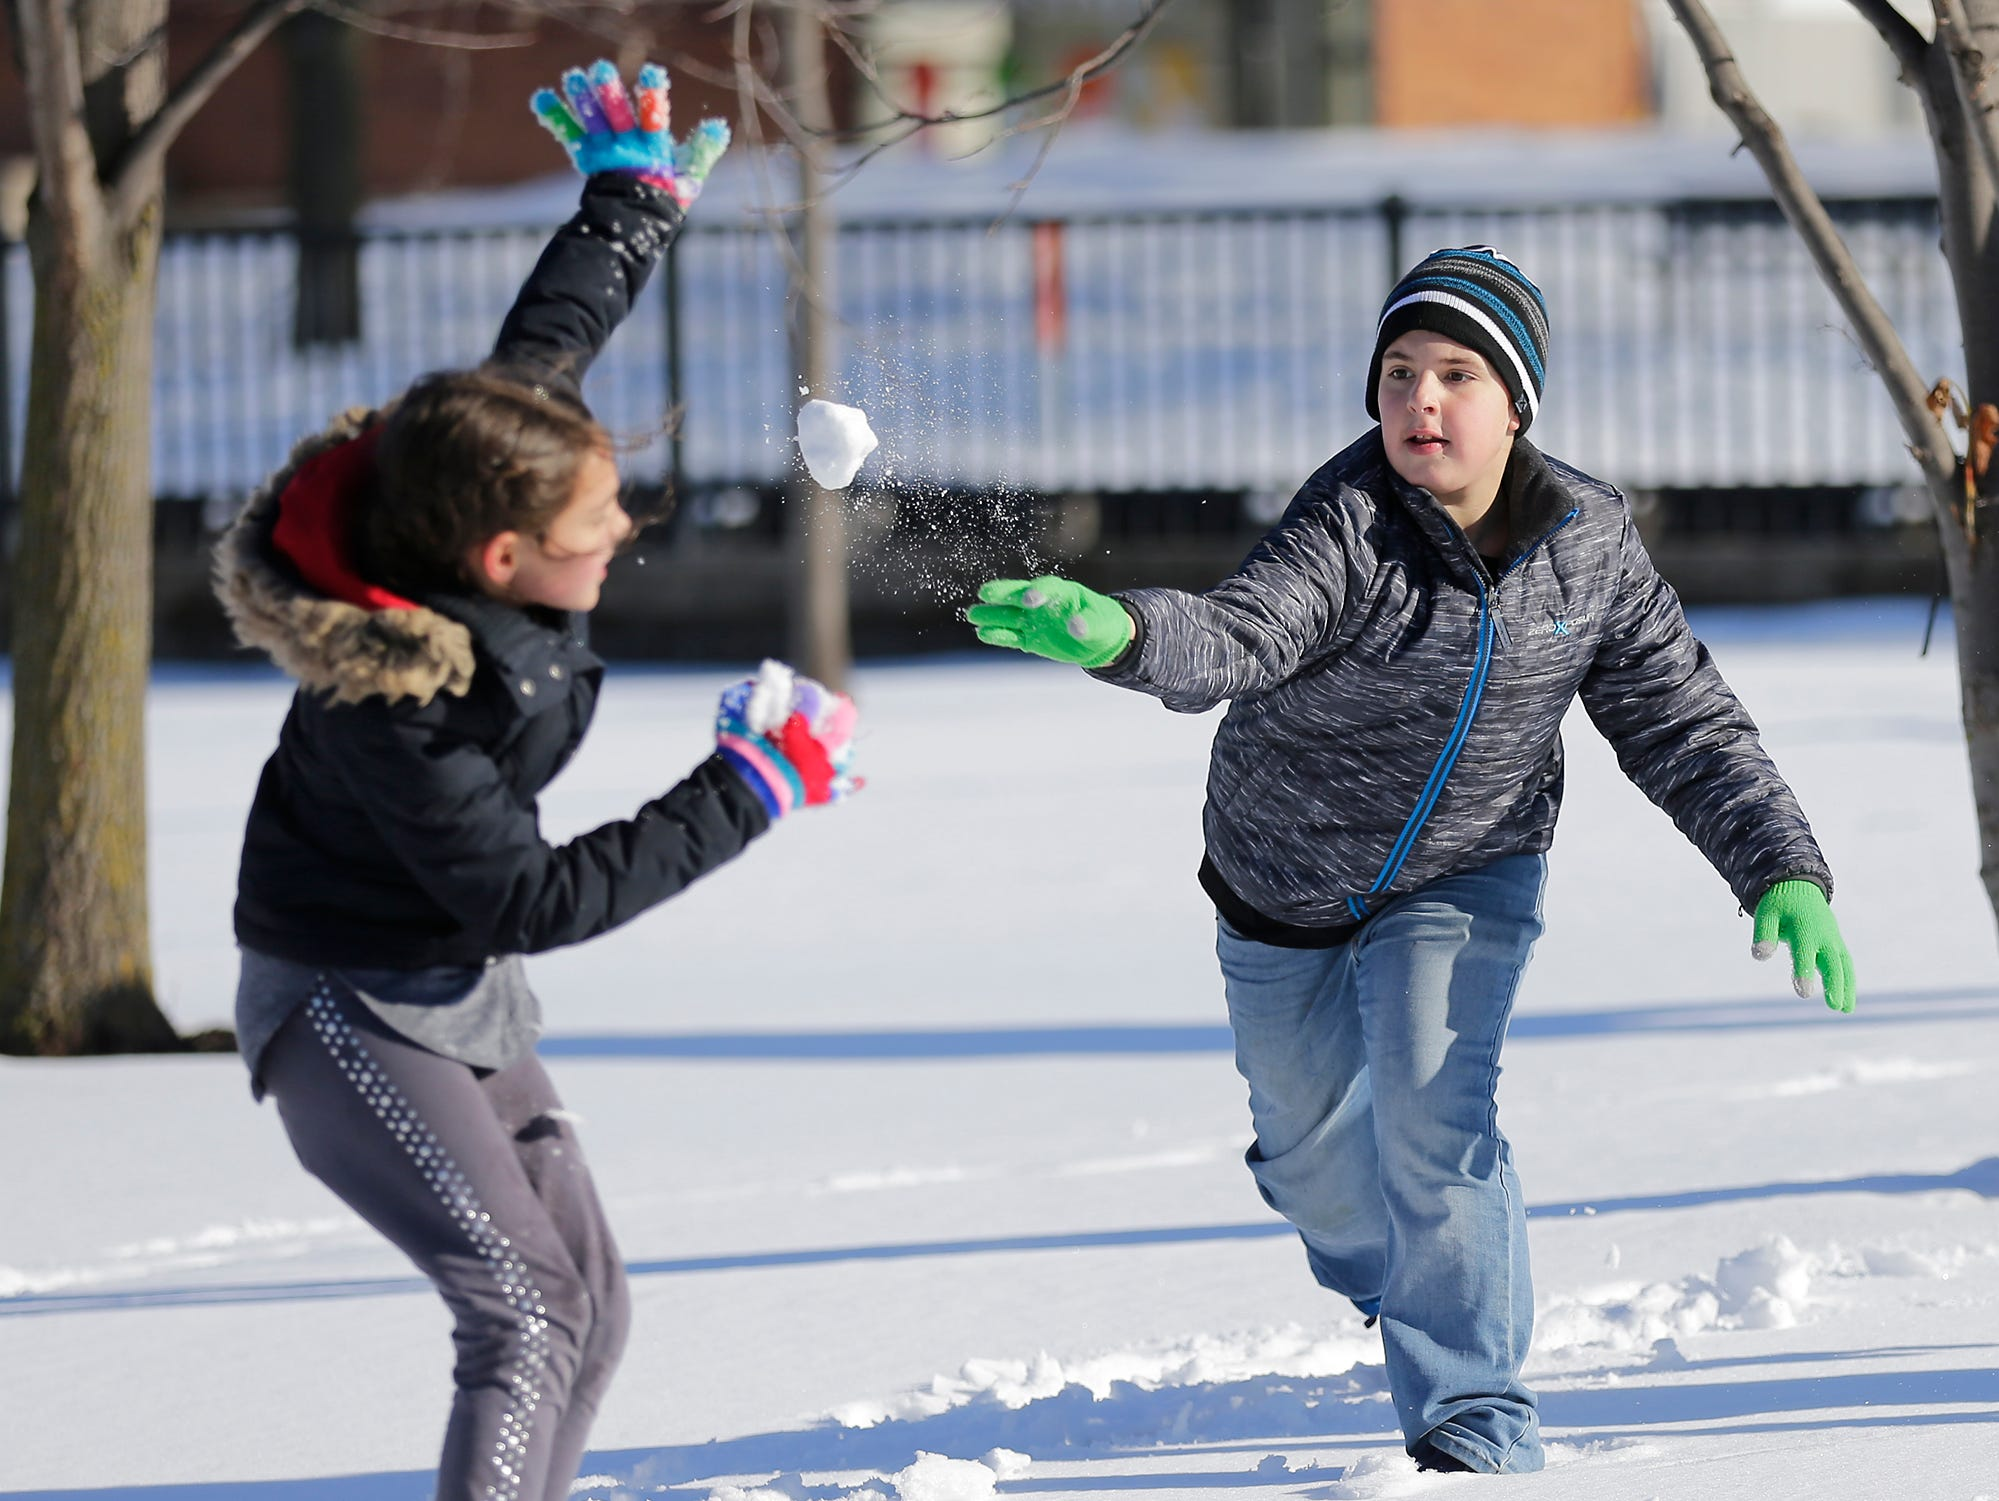 Dayton Shady throws a snowball at Naomi Connelly at Winterfest Saturday, January 5, 2019 at Hamilton park in Fond du Lac, Wisconsin. Doug Raflik/USA TODAY NETWORK-Wisconsin